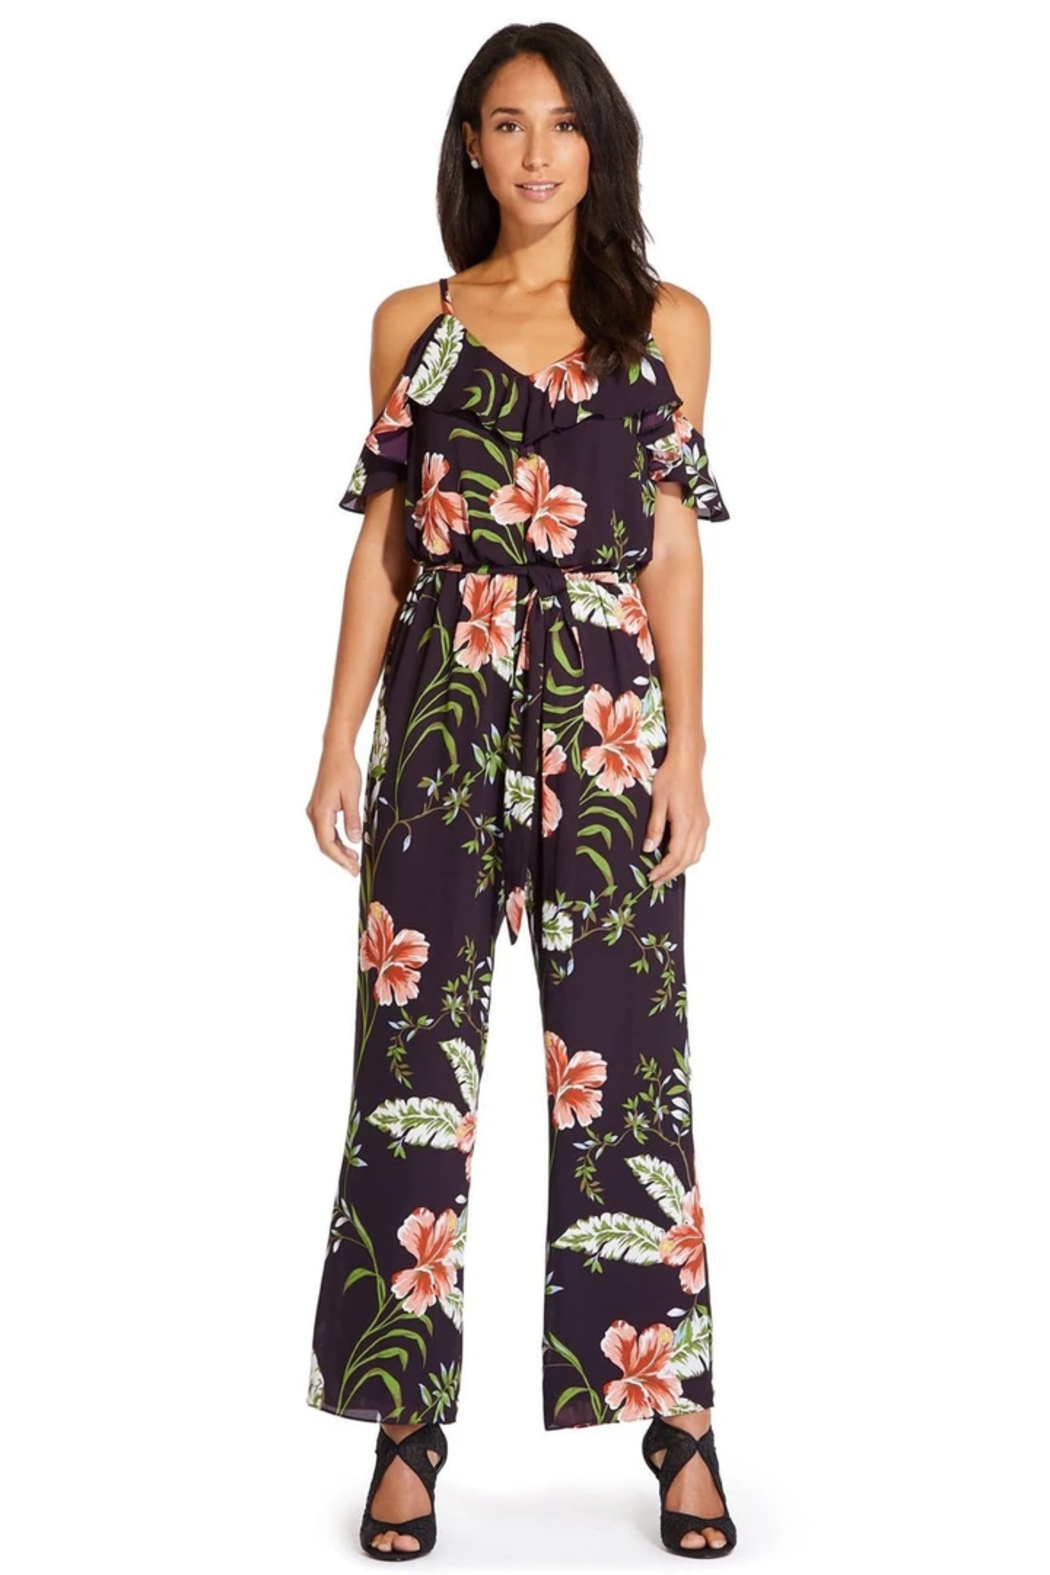 Adrianna Papell AP1D103372 - Pant-Suit - Front Cropped Image